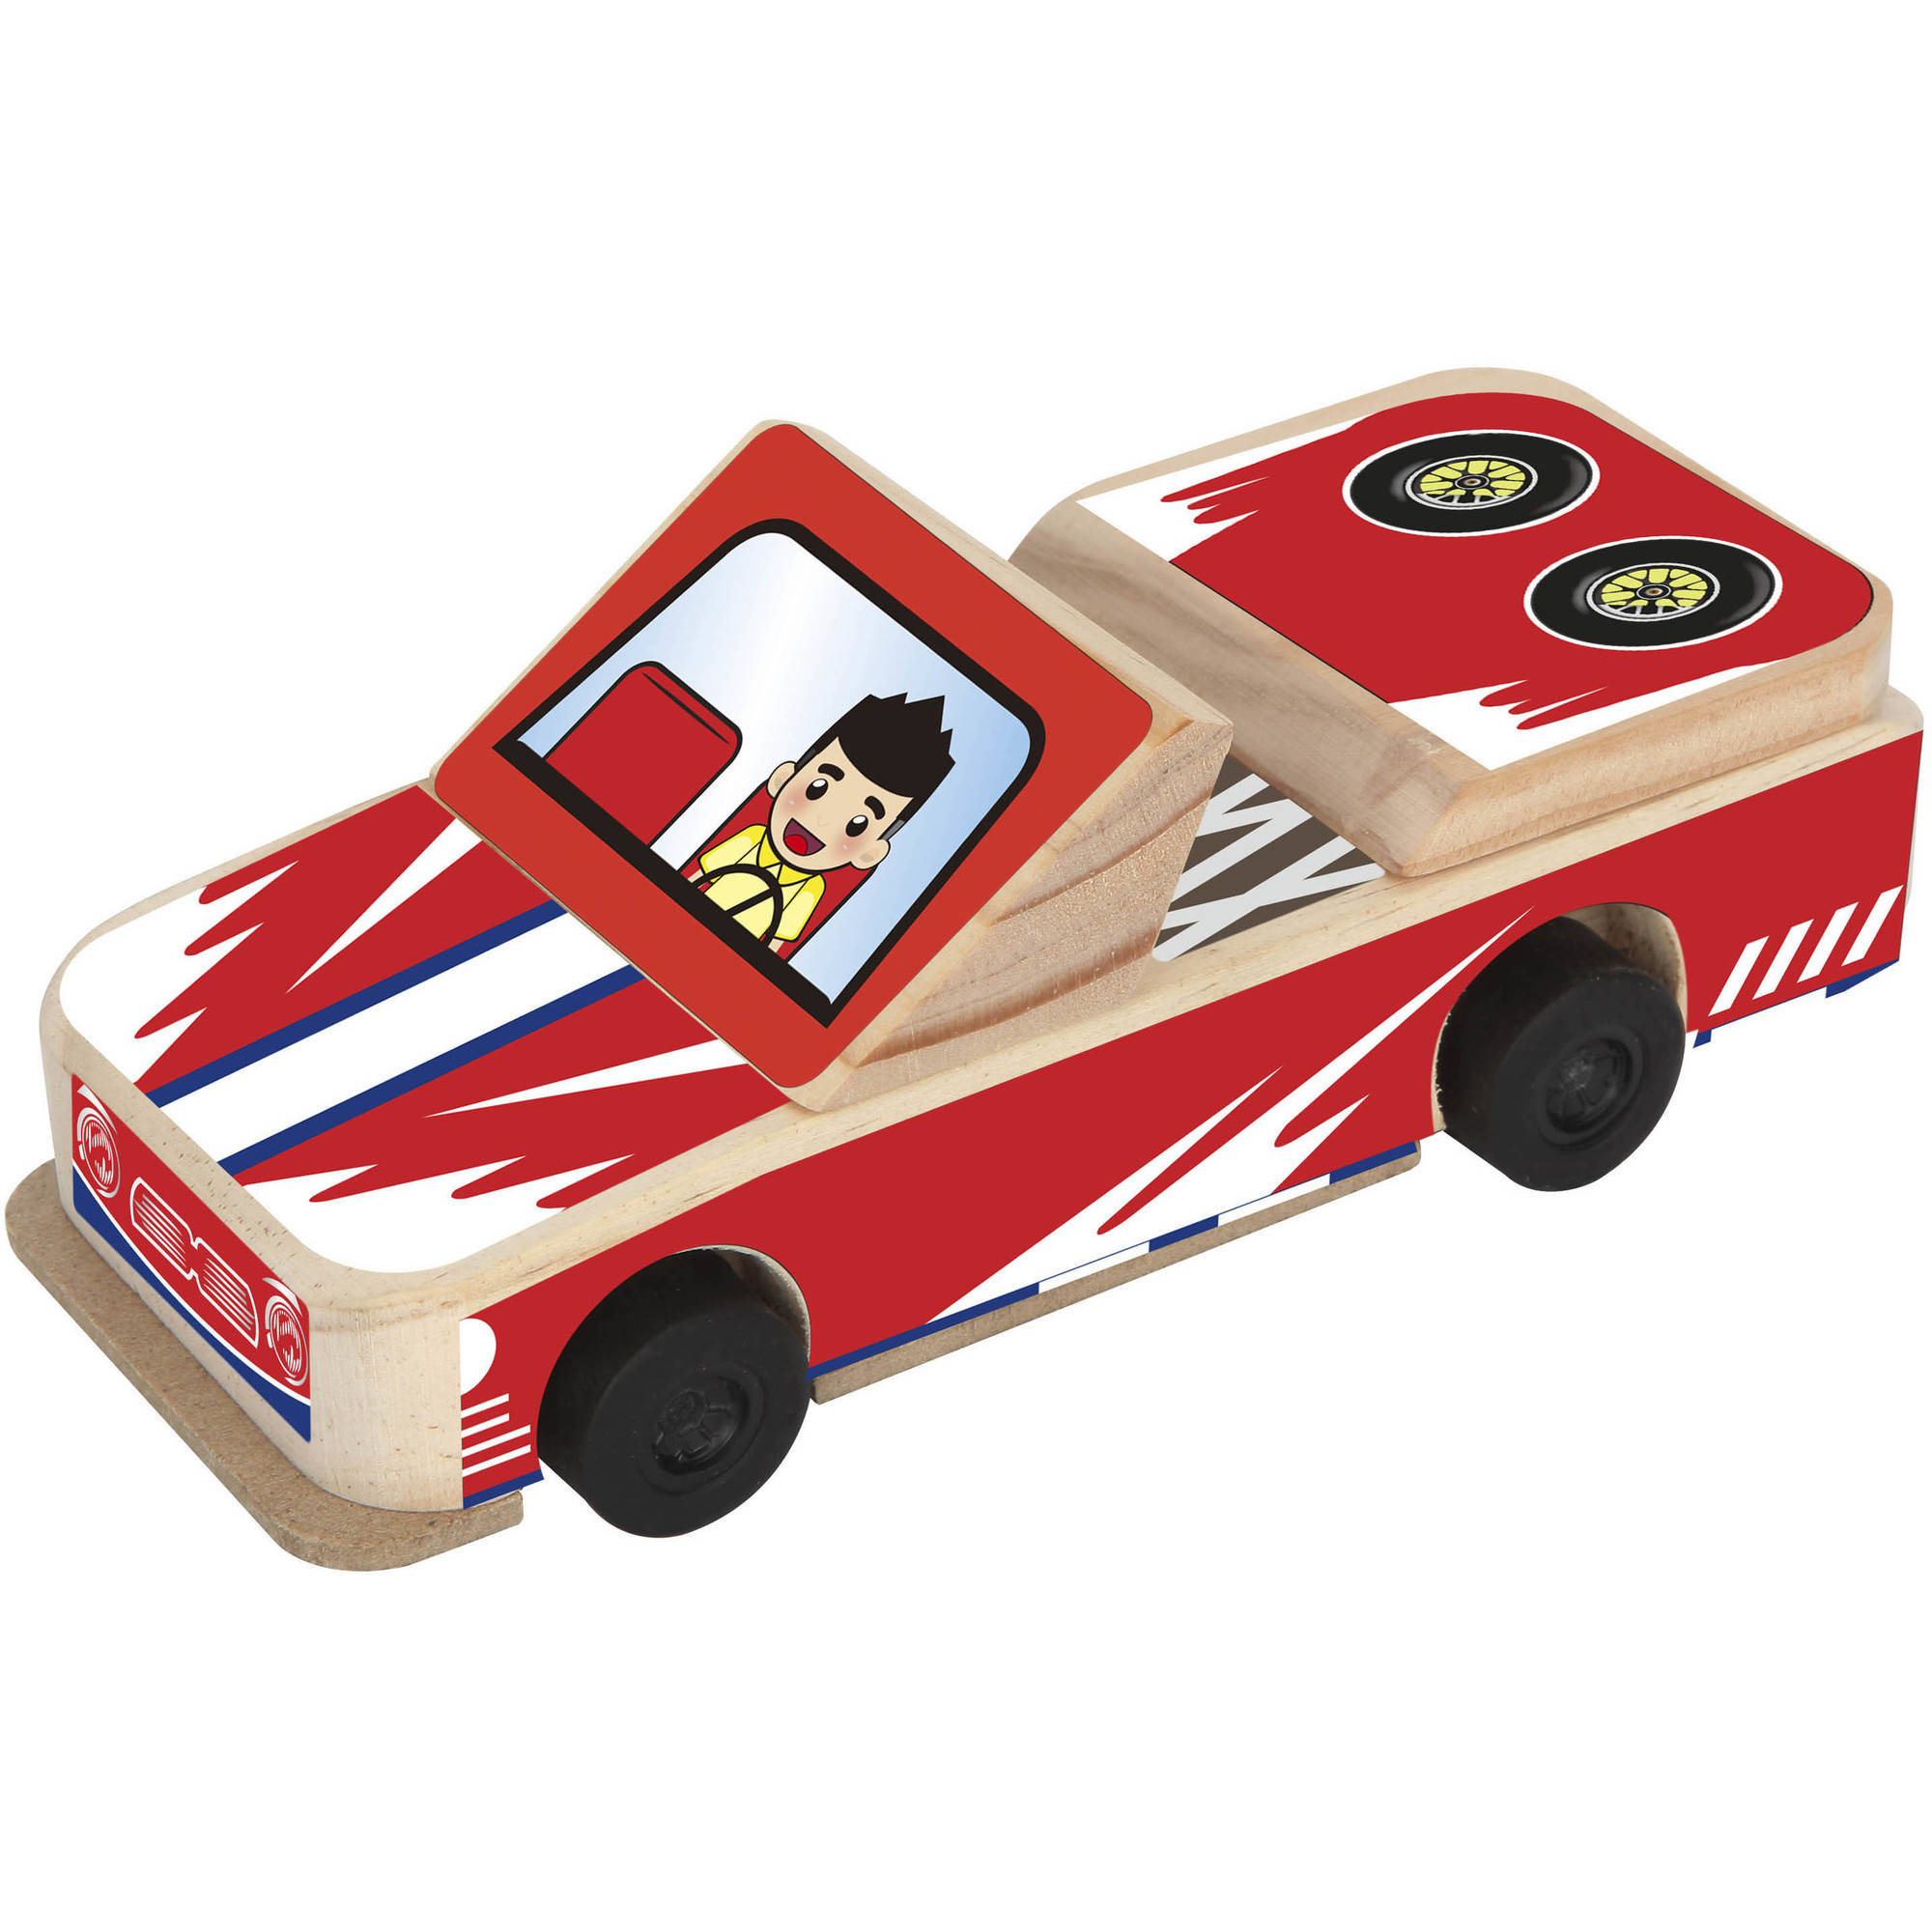 Build a Sport's Car Kid's Project Kit